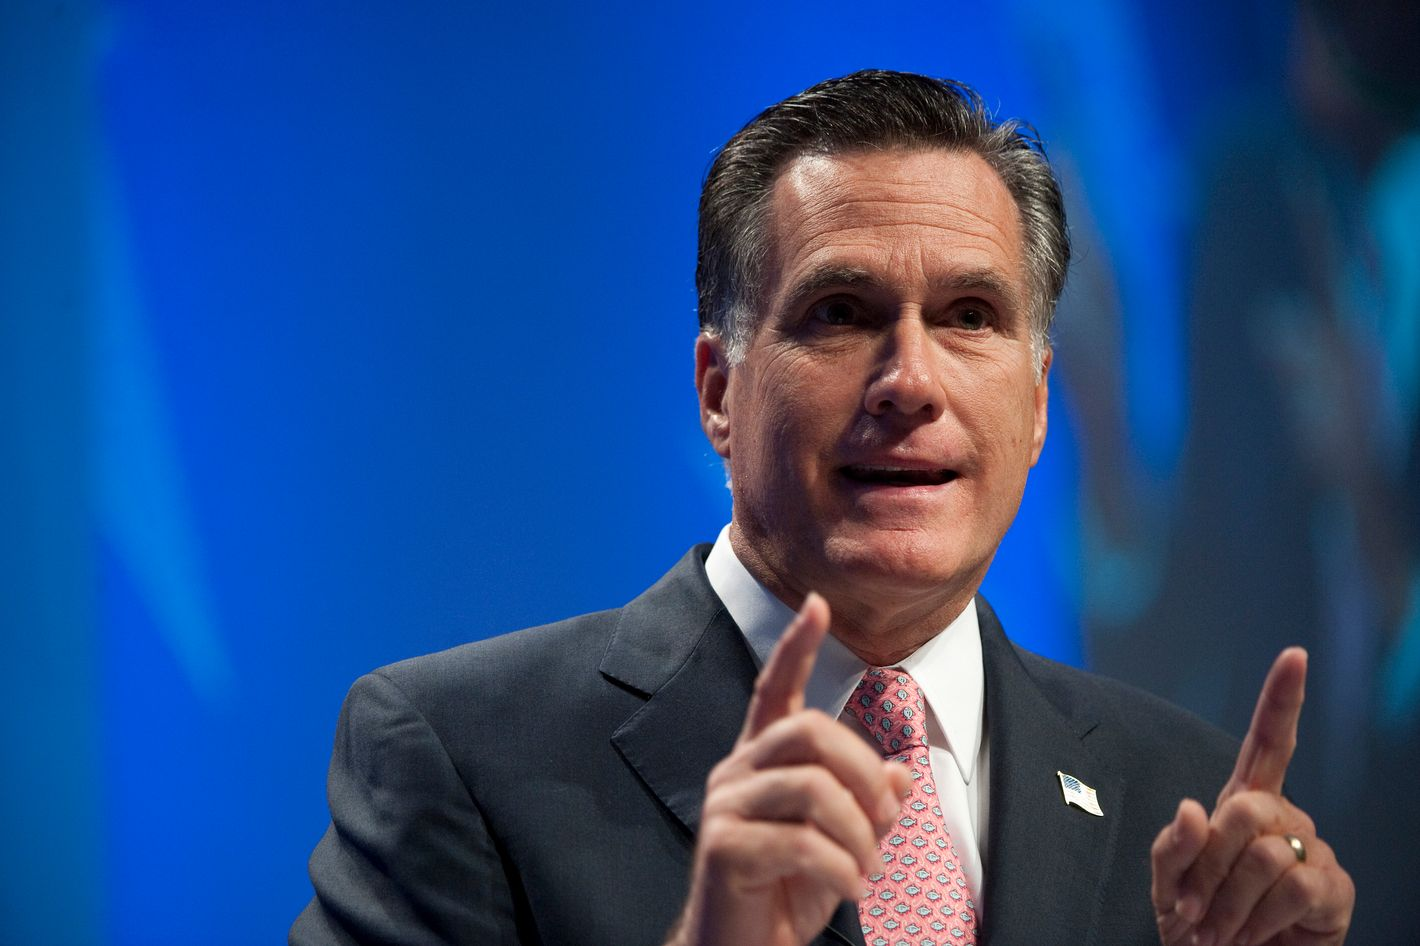 Former Gov. Mitt Romney, R-Mass., speaks to the CPAC Conference held by the American Conservative Union in Washington on Friday, Feb. 11, 2010.